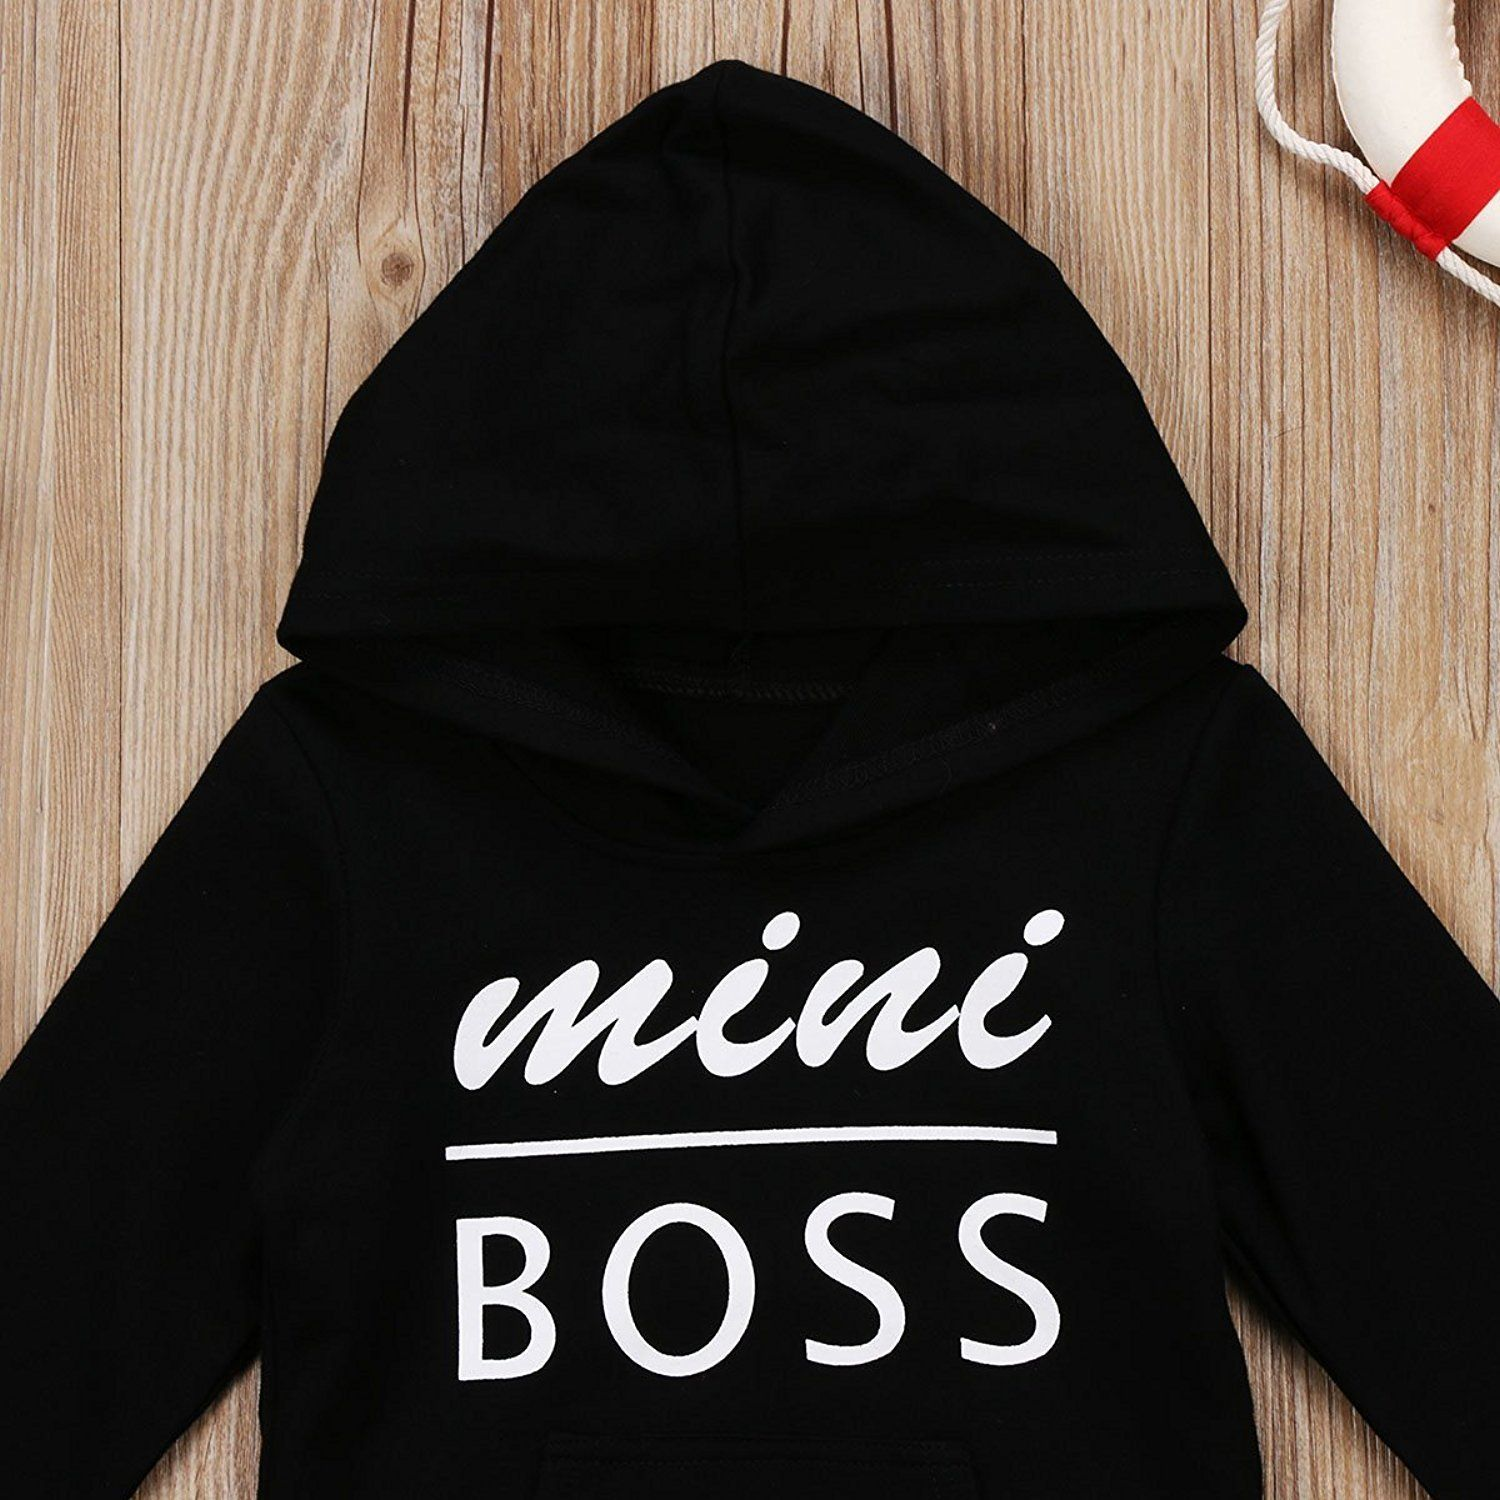 Kids Baby Boy Girl Hooded Sweatshirt Tops Black Casual Hoodie with Pocket Outfit